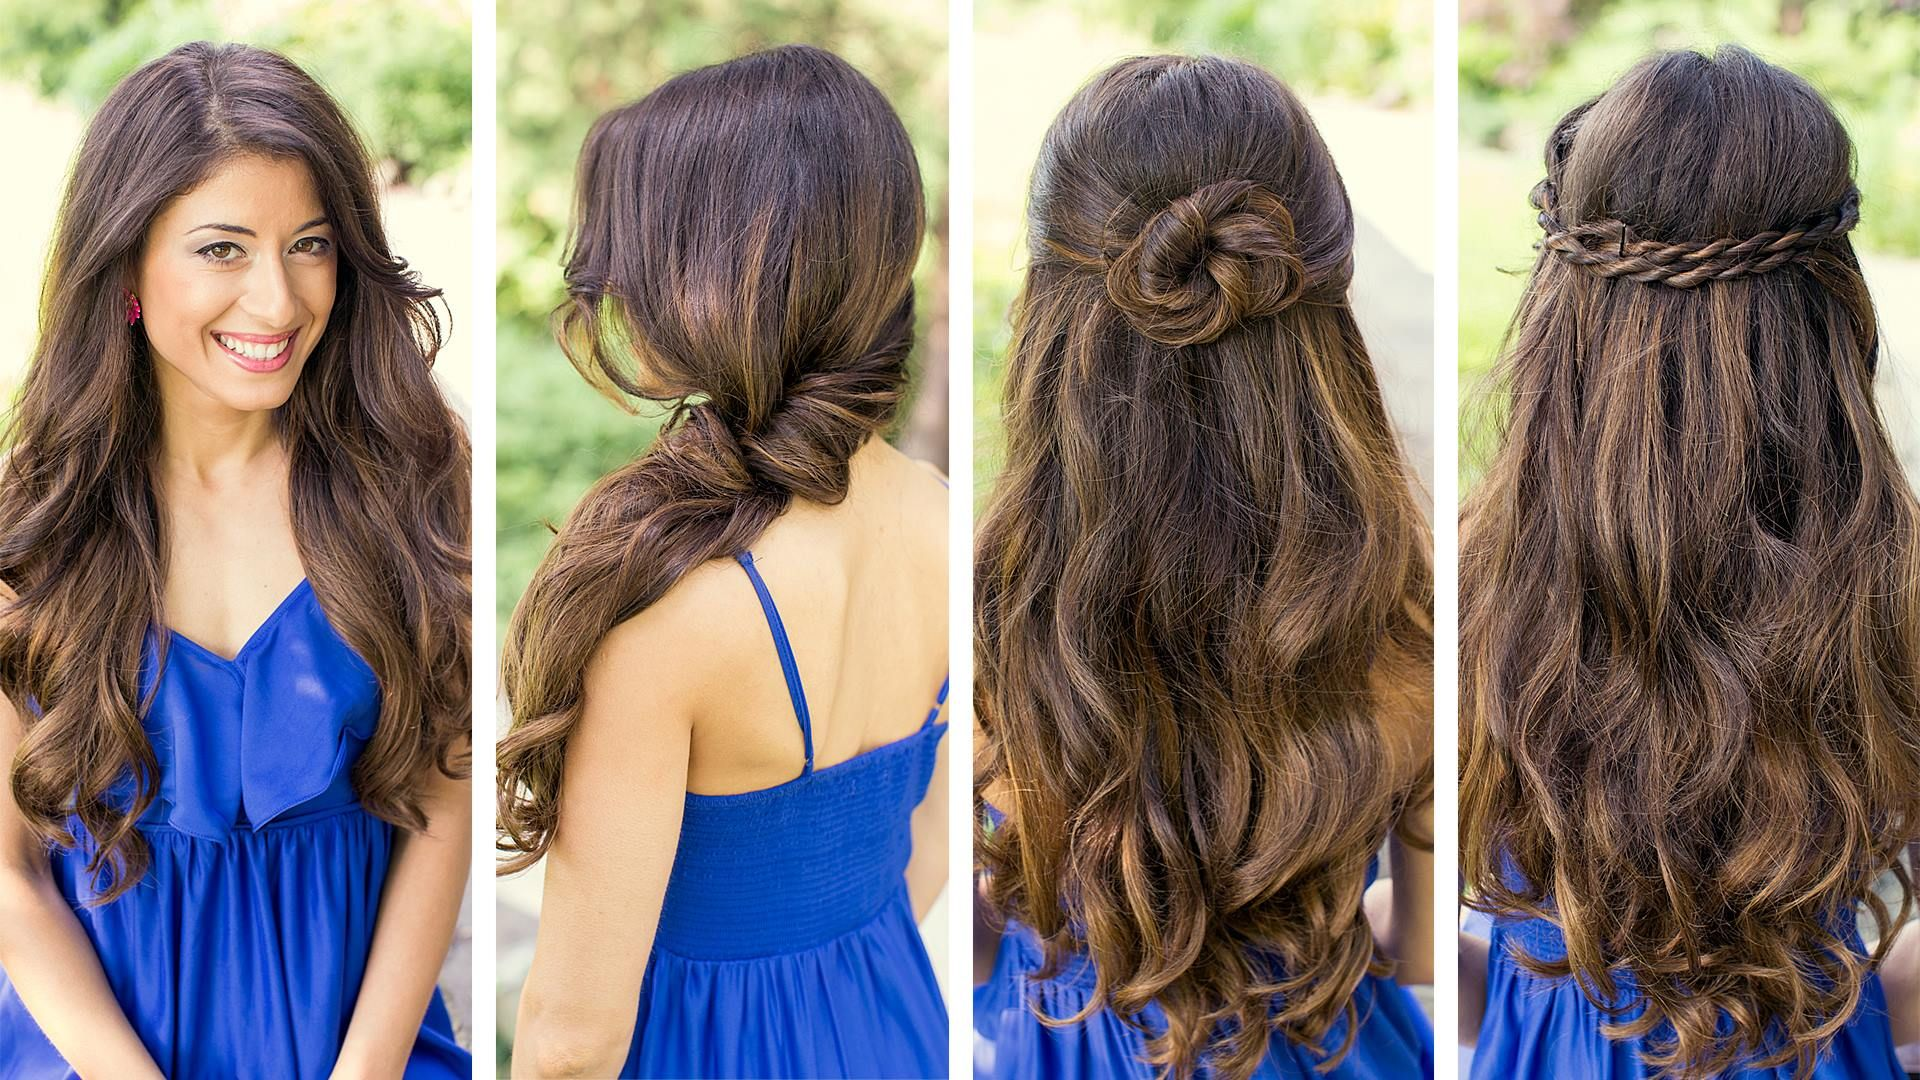 Pin By Luxy Hair On Hair Tutorials How To Long Hair Styles Cute Hairstyles Long Hair Styles